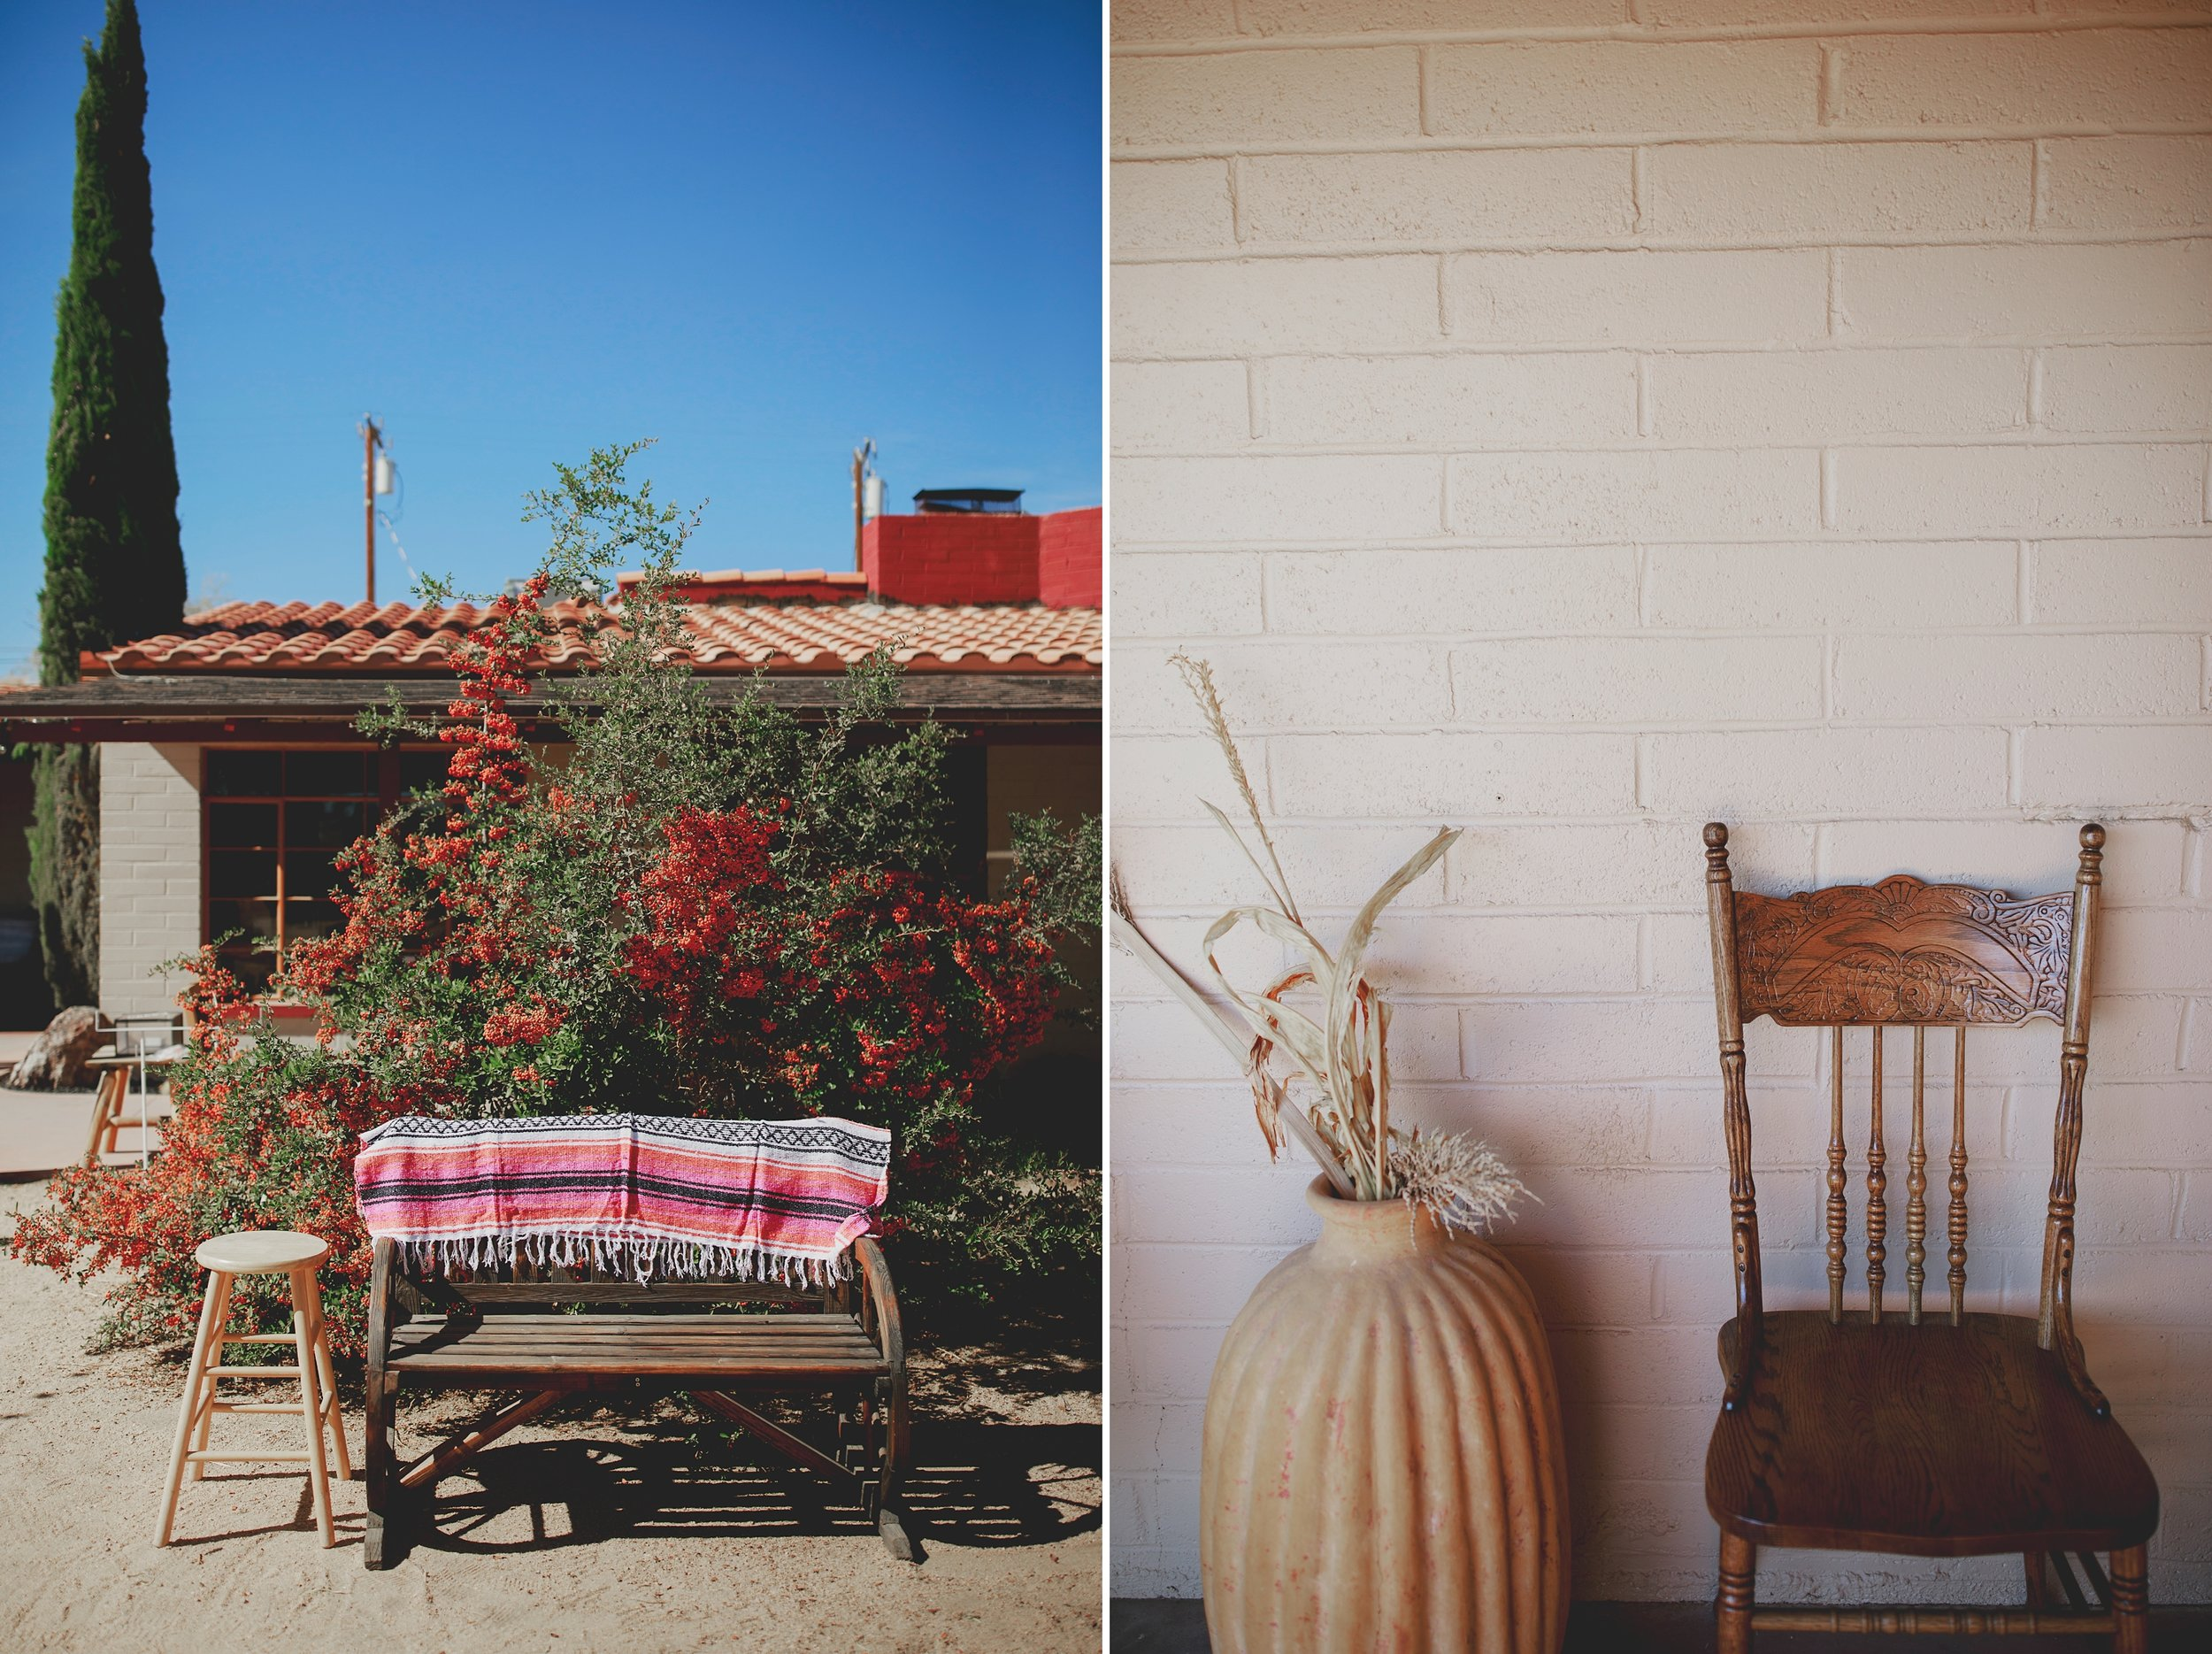 amanda_vanvels_joshua_tree_inn_wedding_015.jpg